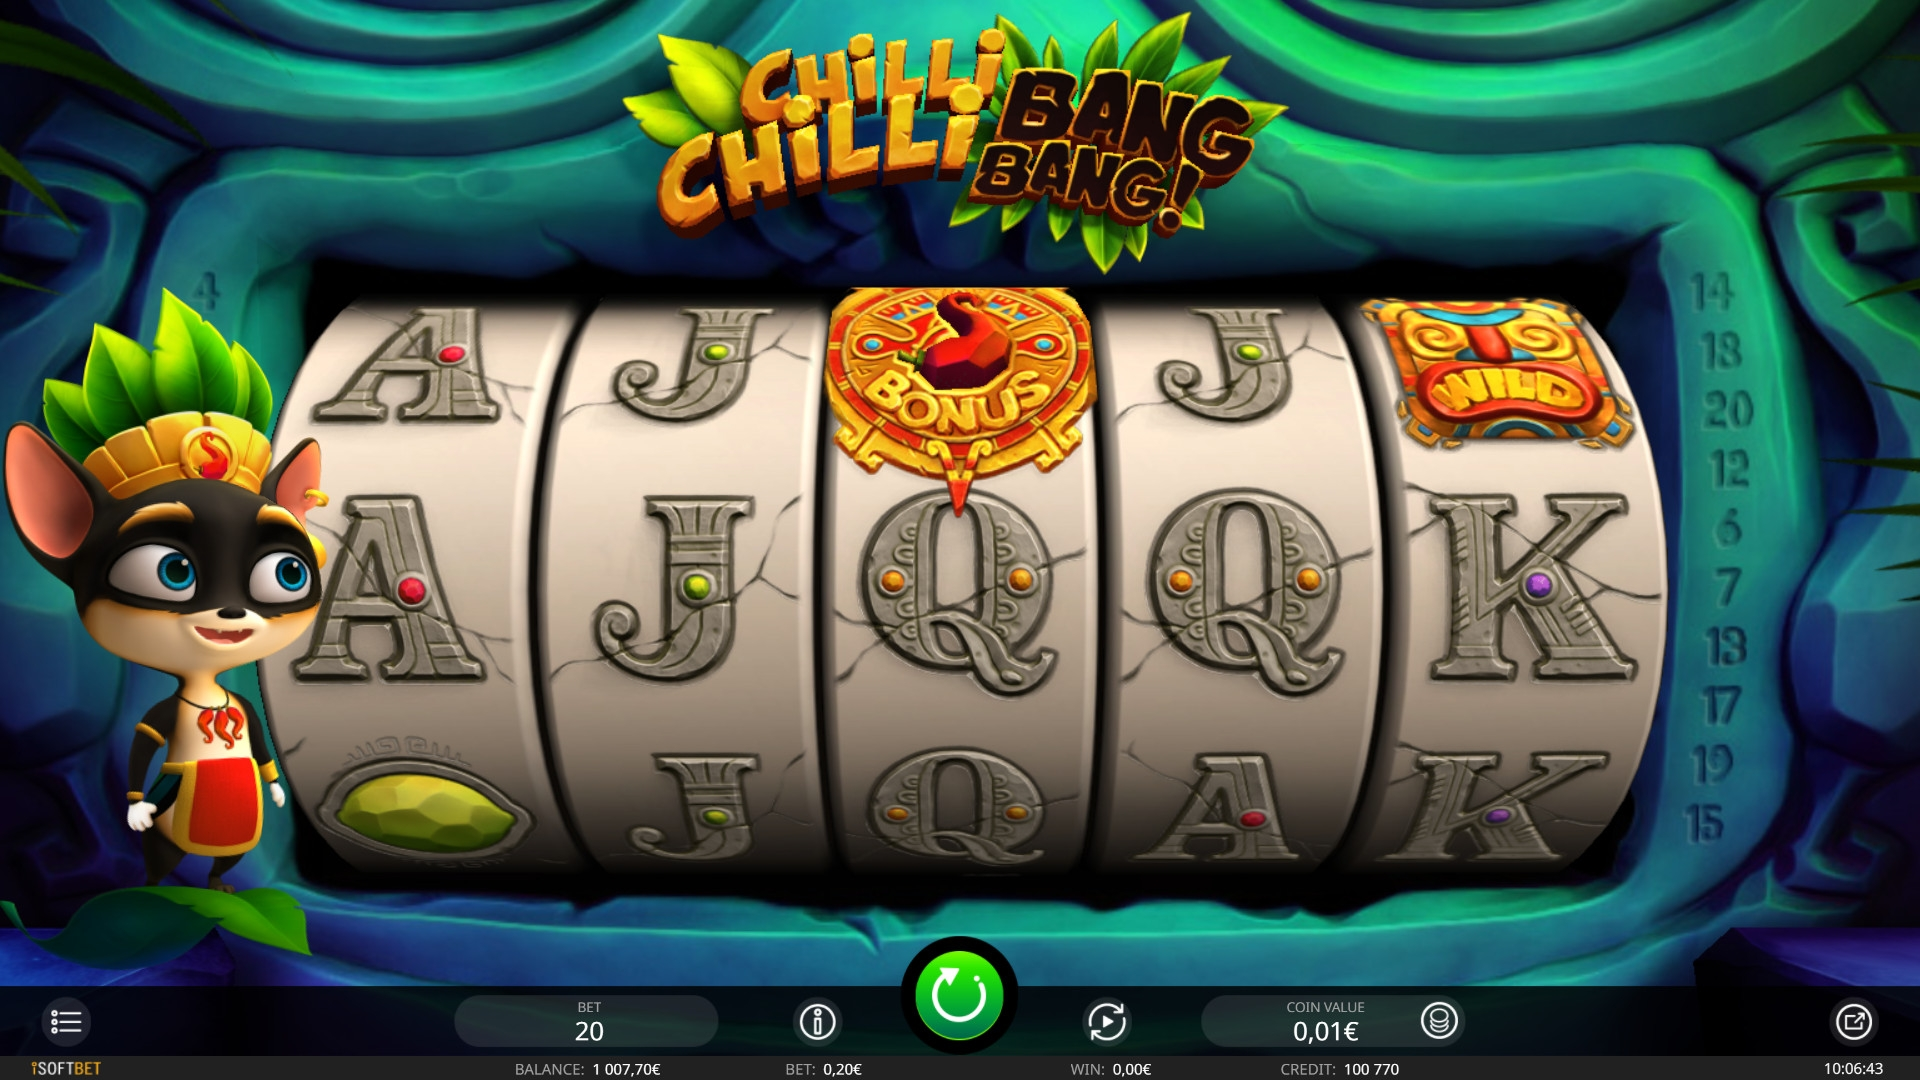 Chilli Chilli Bang Bang (Chilli Chilli Bang Bang) from category Slots